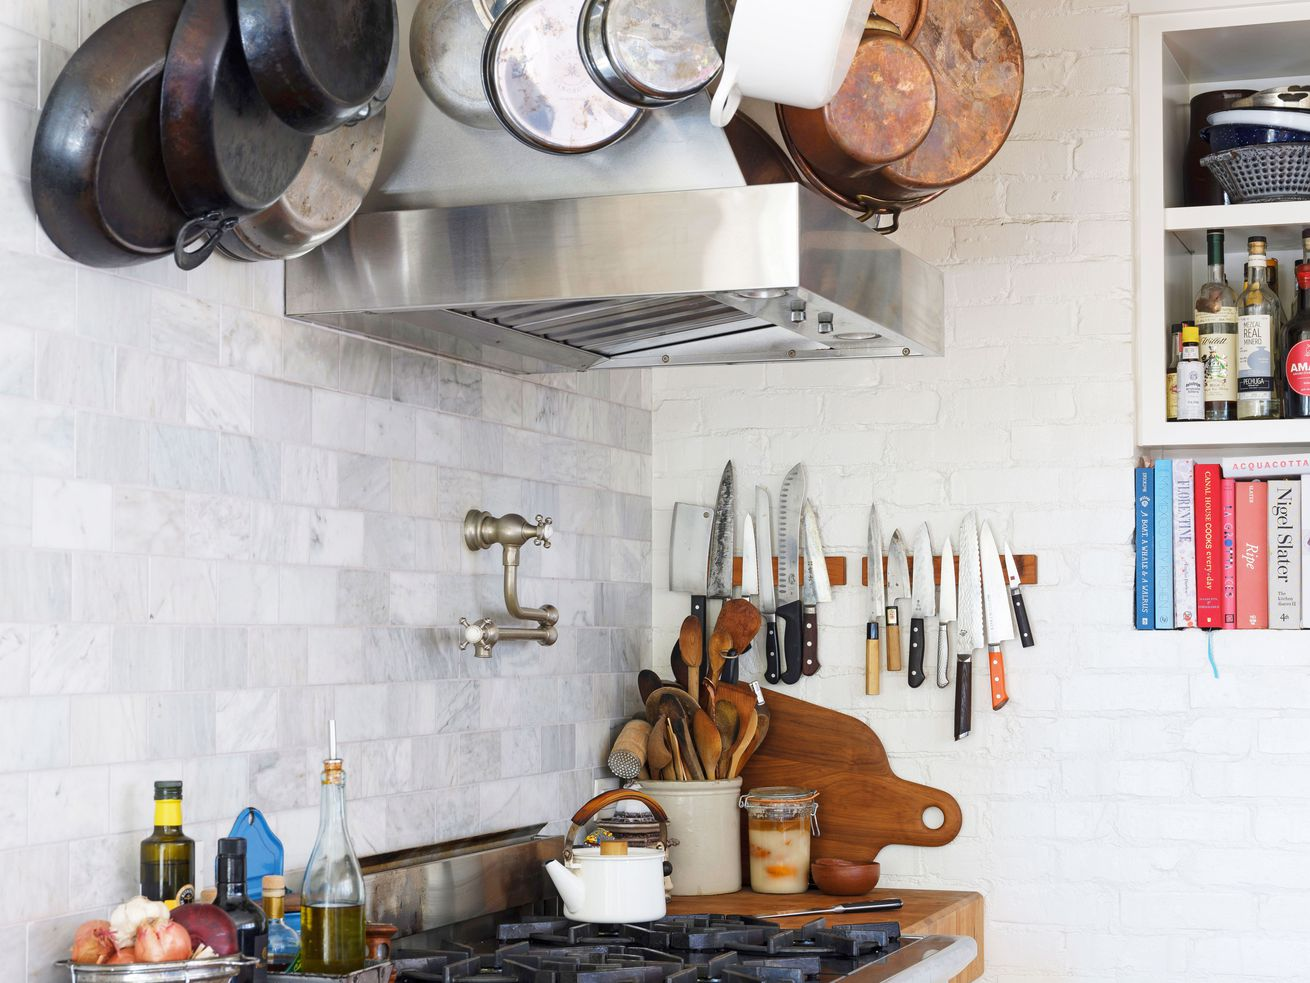 Simple decor ideas to steal from a chef?s warm home in Seattle